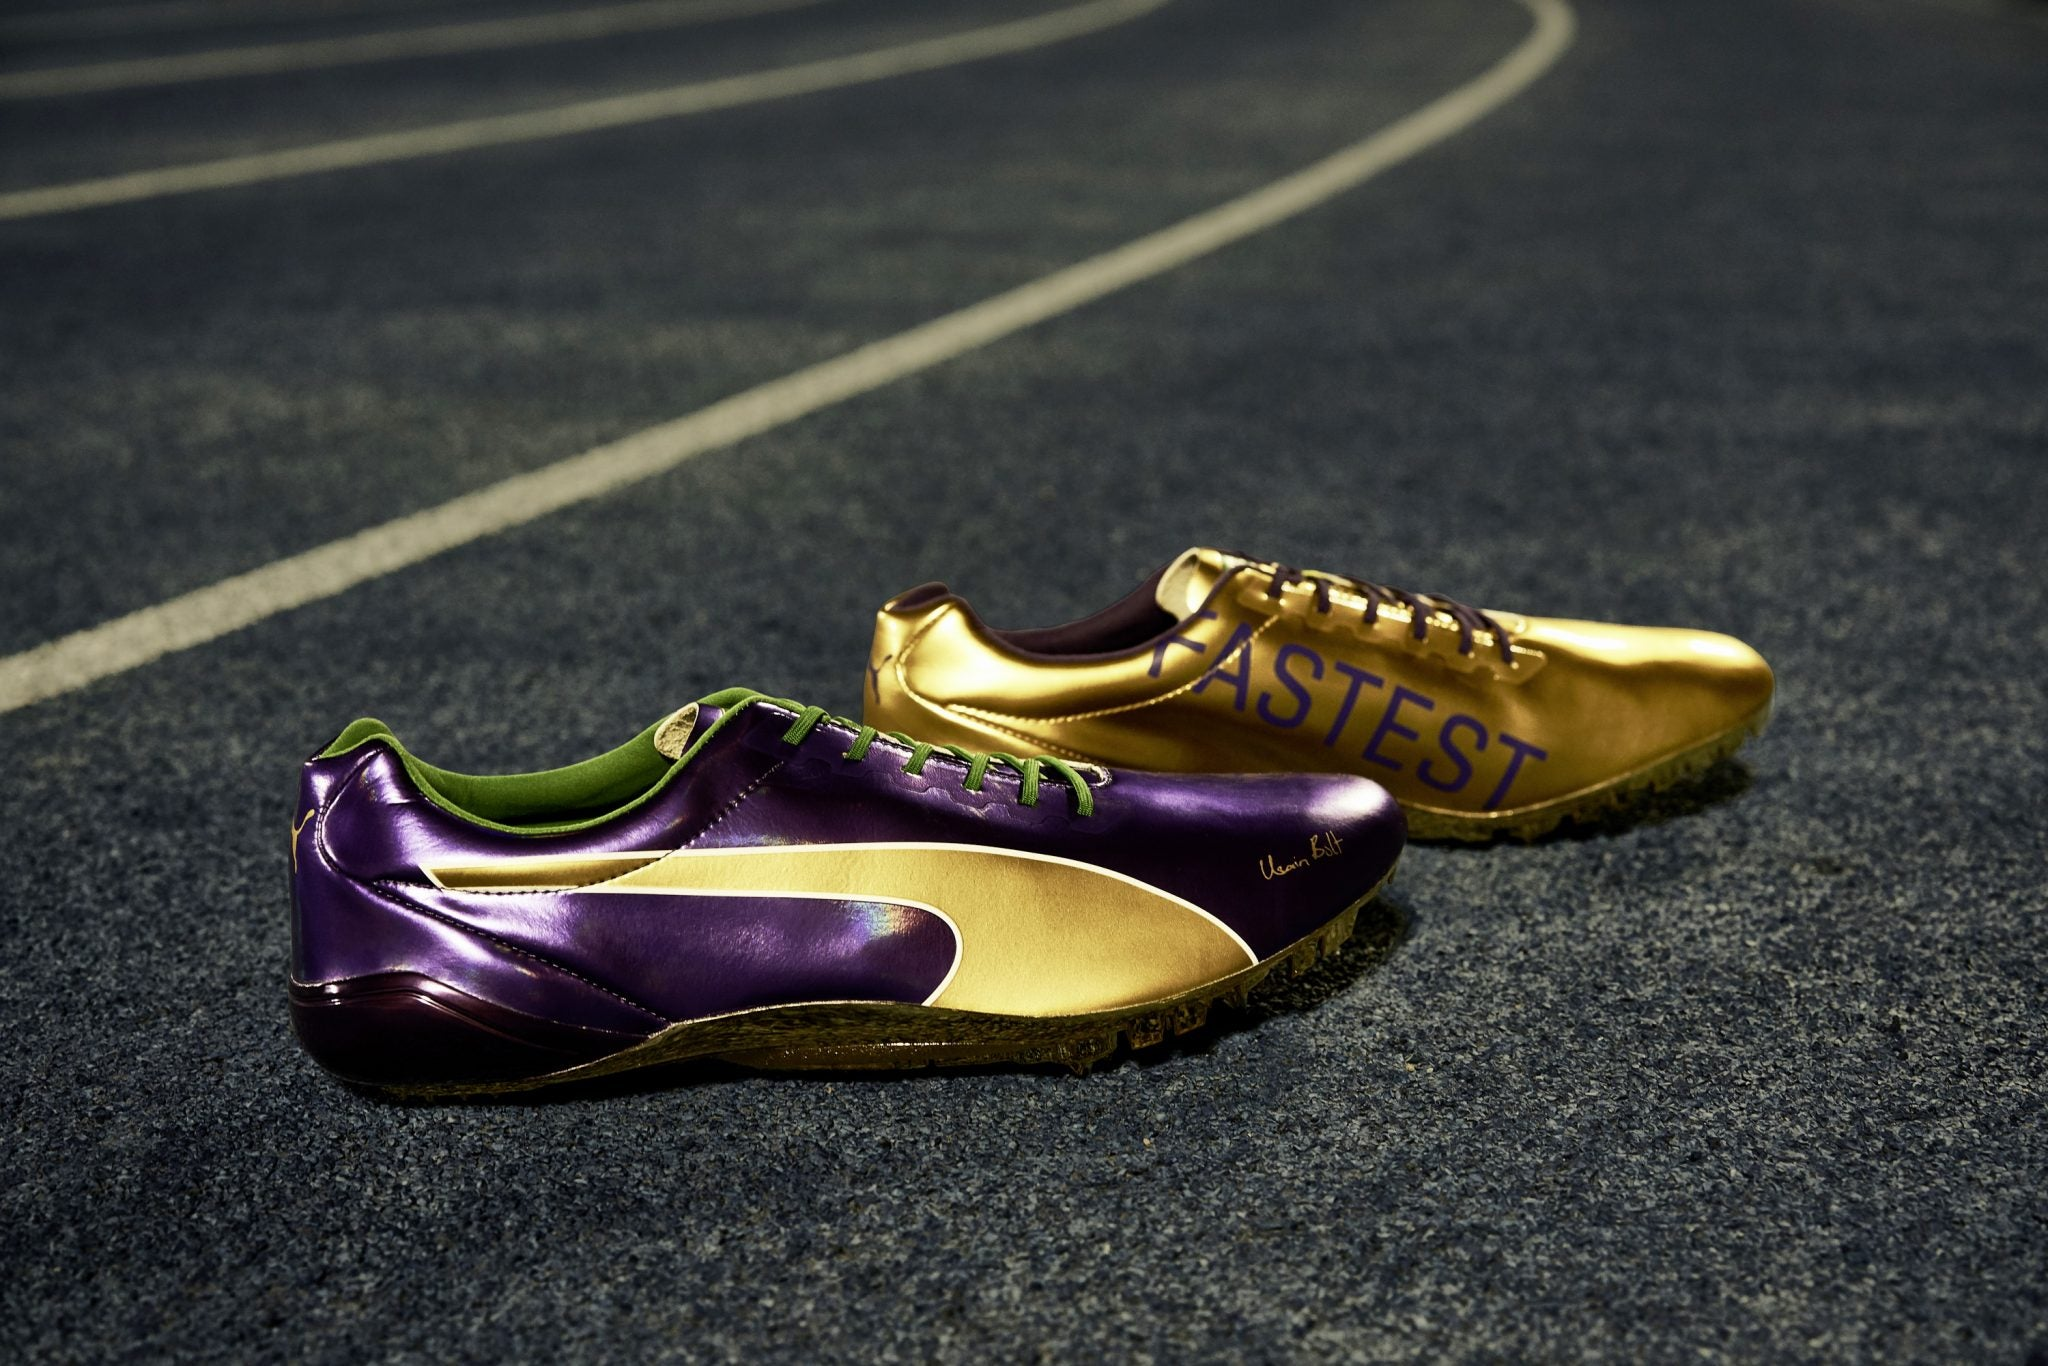 Puma Created Brand New Spikes For Usain Bolt's Last Race Ever